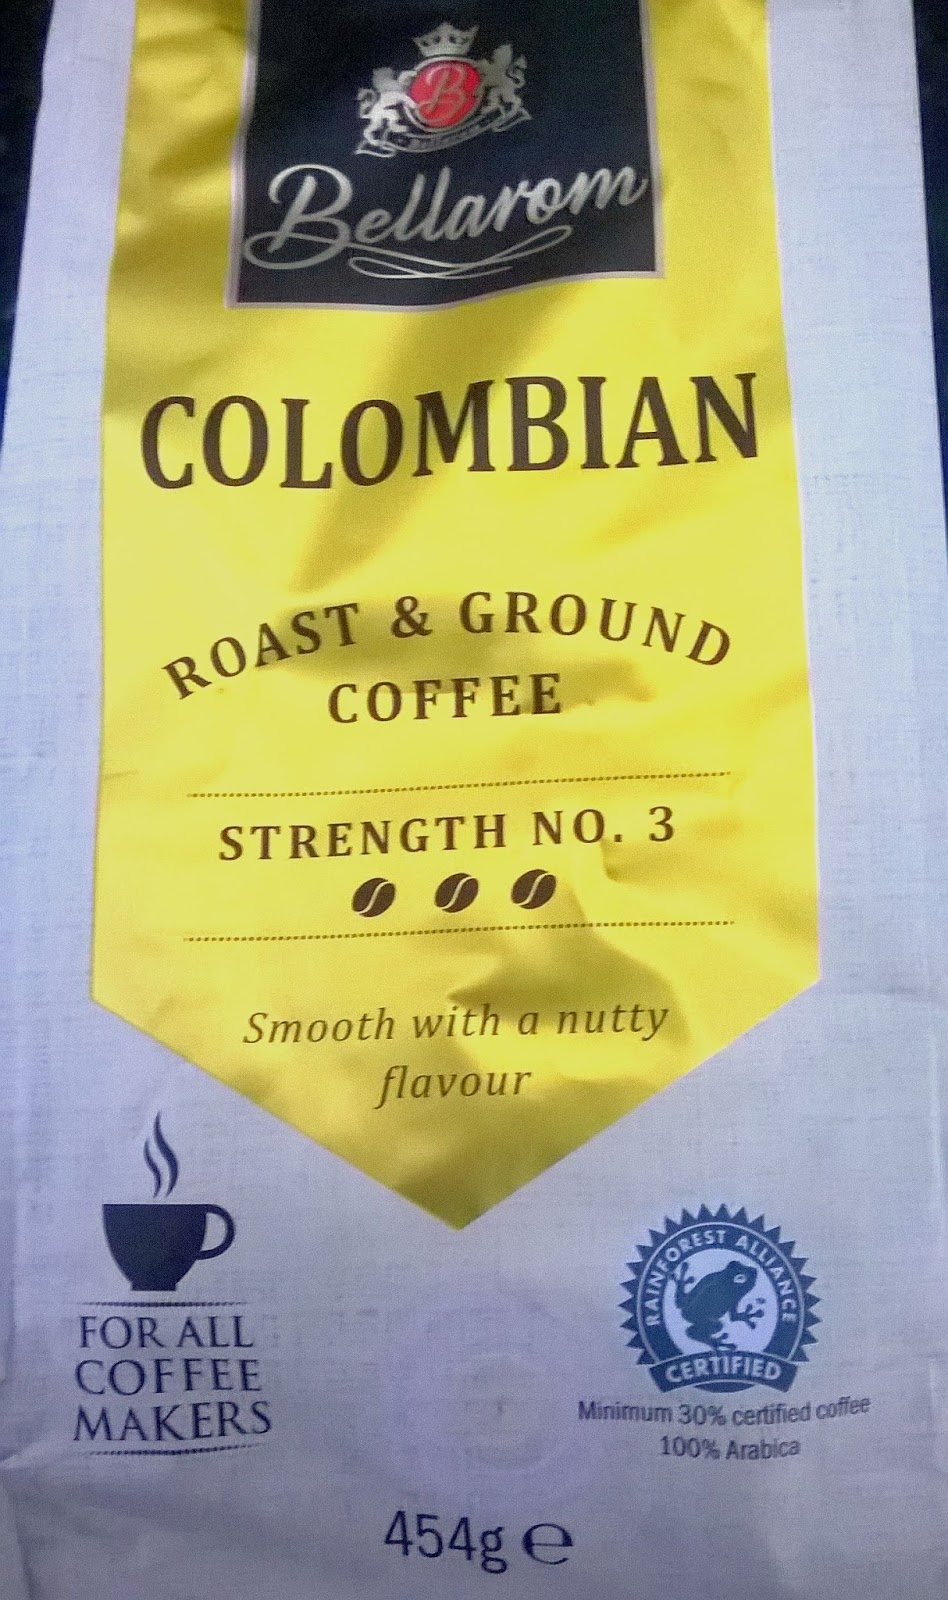 Smell The Tea And Coffee Lidl Bellarom Colombian Coffee